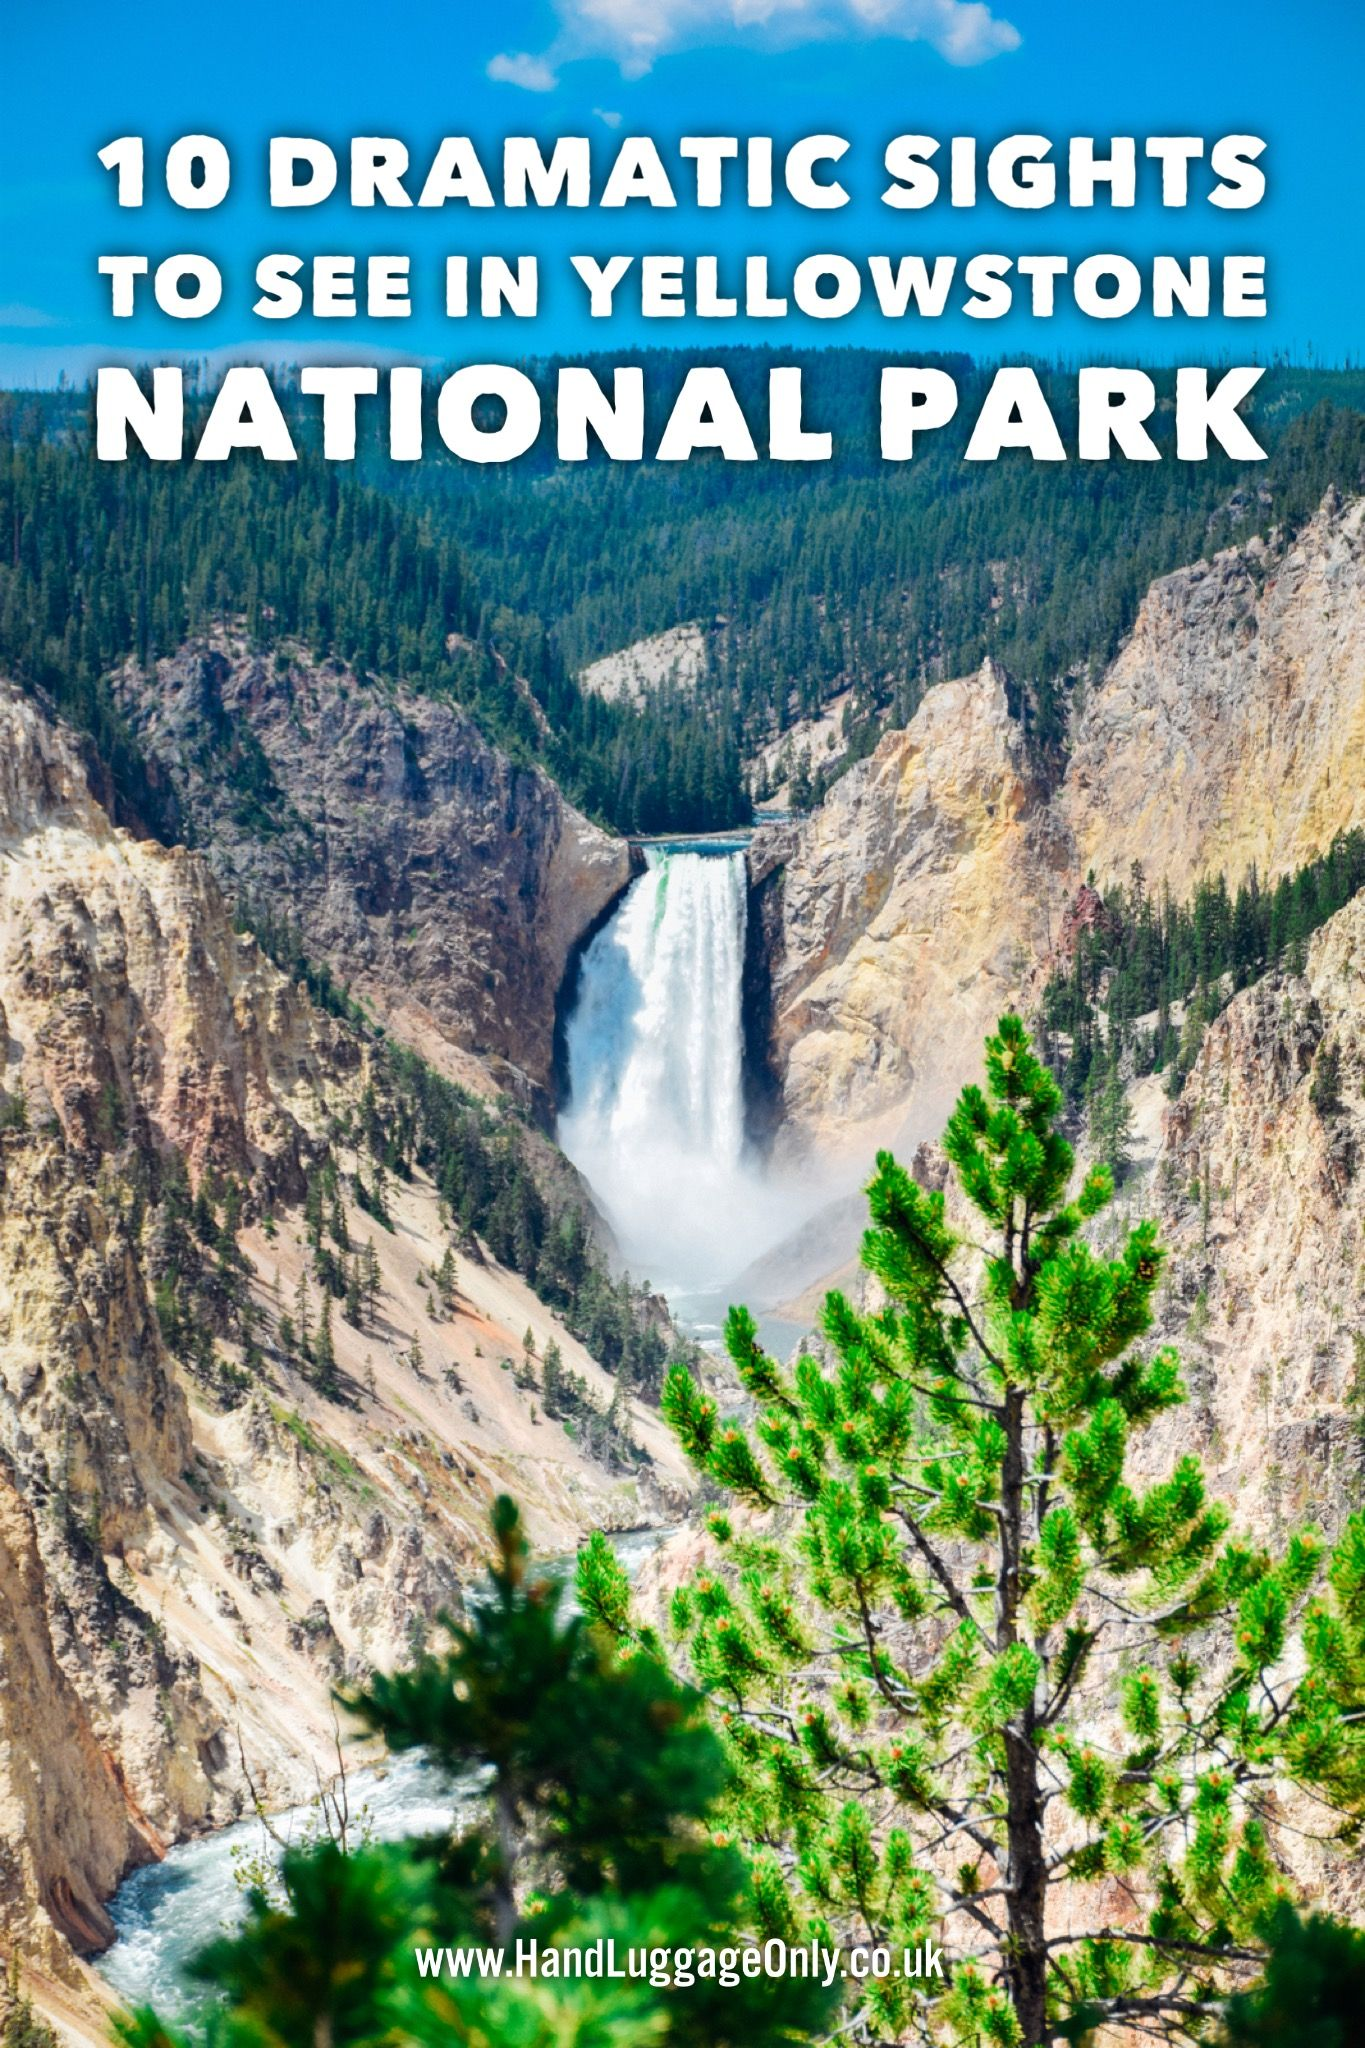 10 Dramatic Sights You Have To See In Yellowstone National Park USA 21